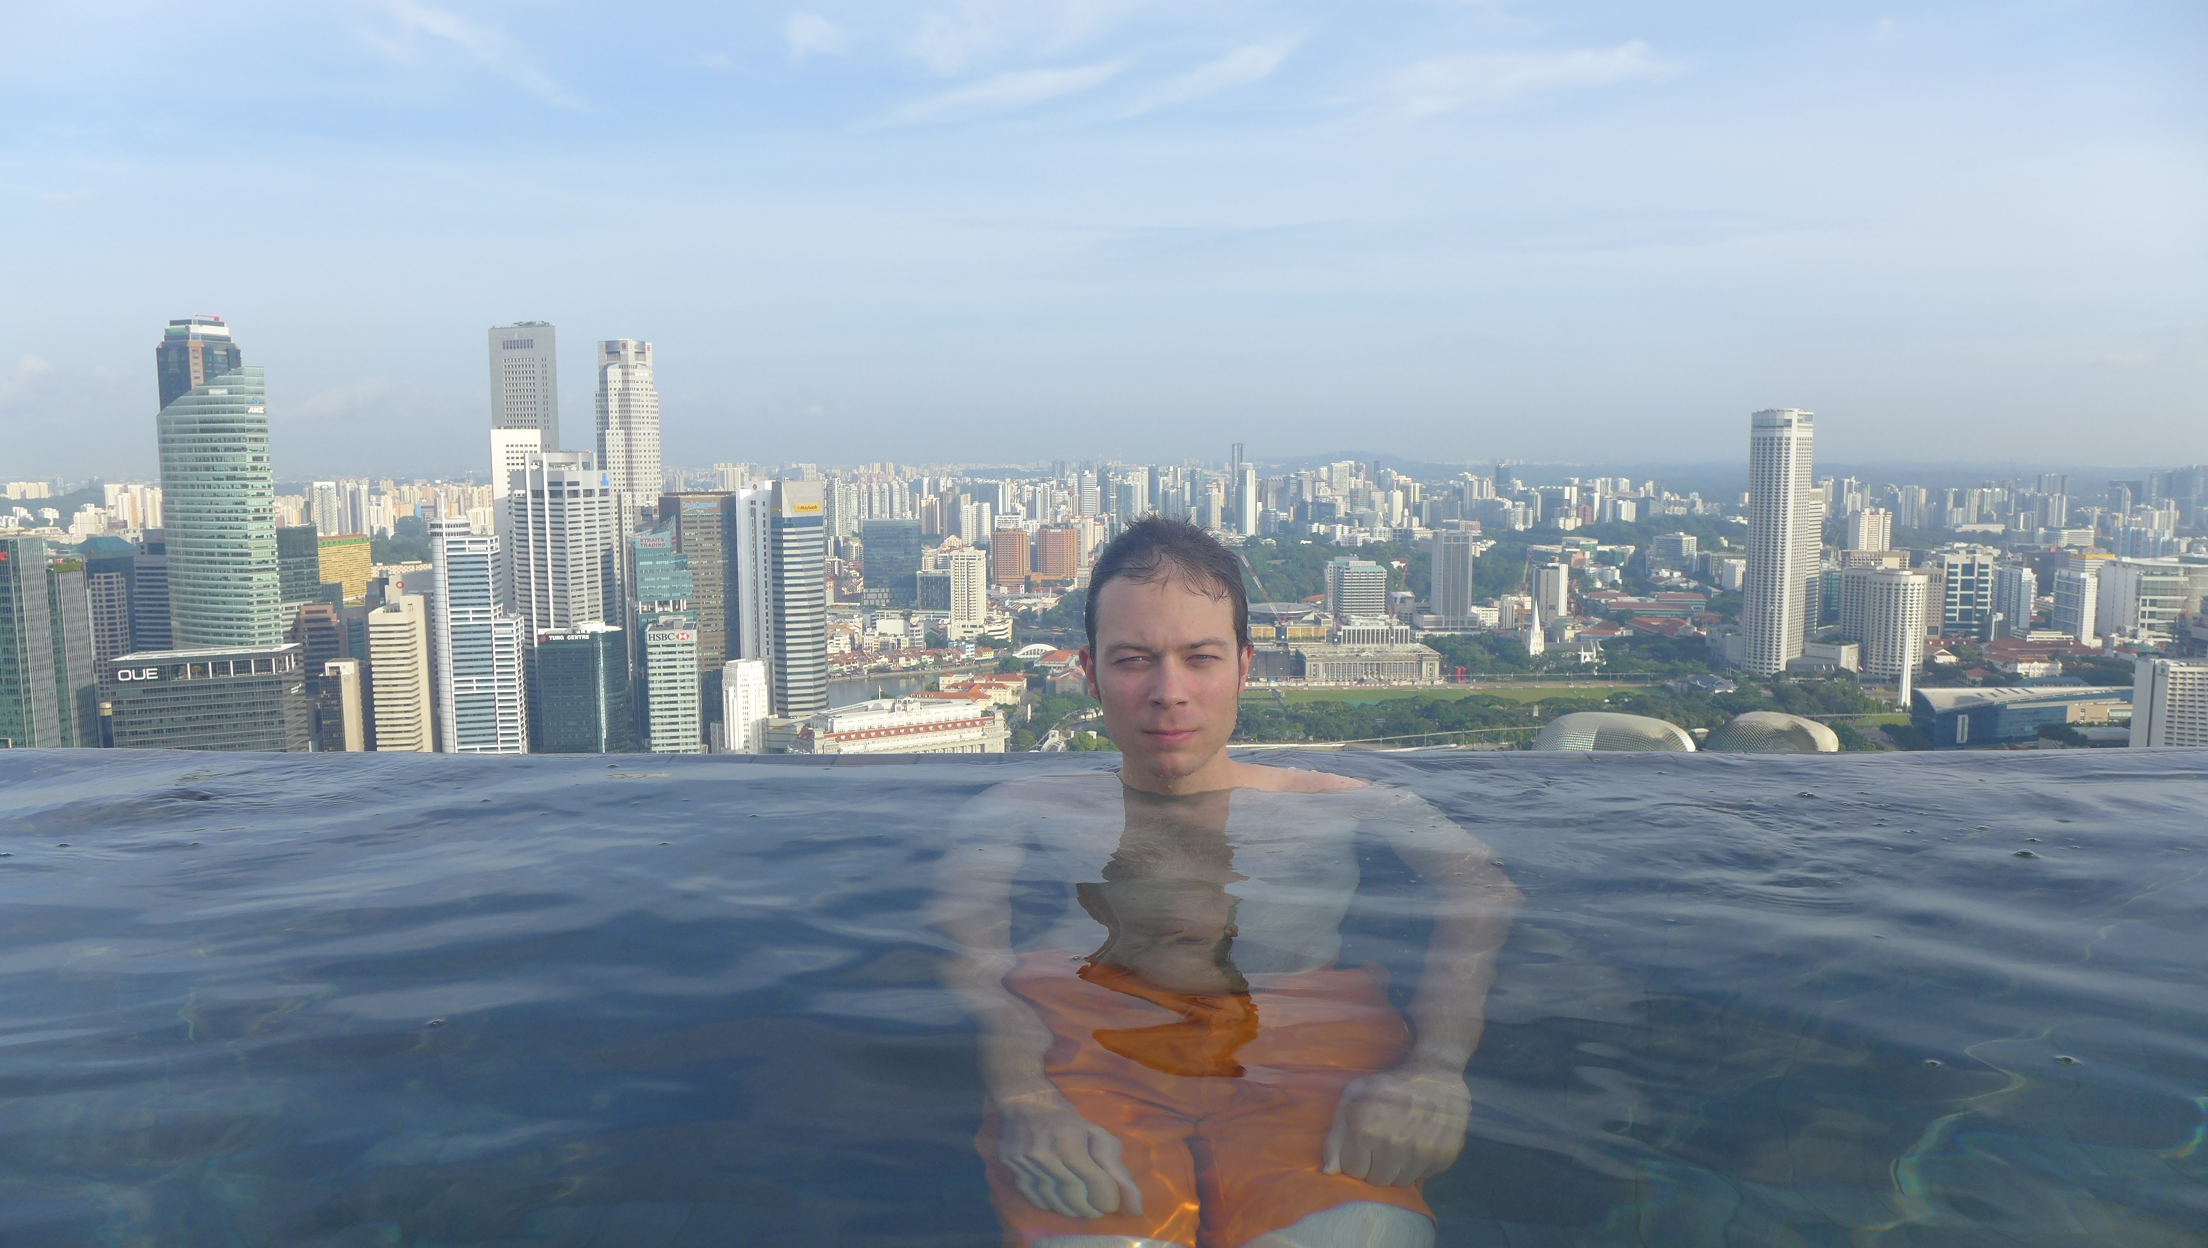 Singapore Hotel With Infinity Pool On Rooftop Image Infinity Pool On The Rooftop At Marina Bay Sands Singapore